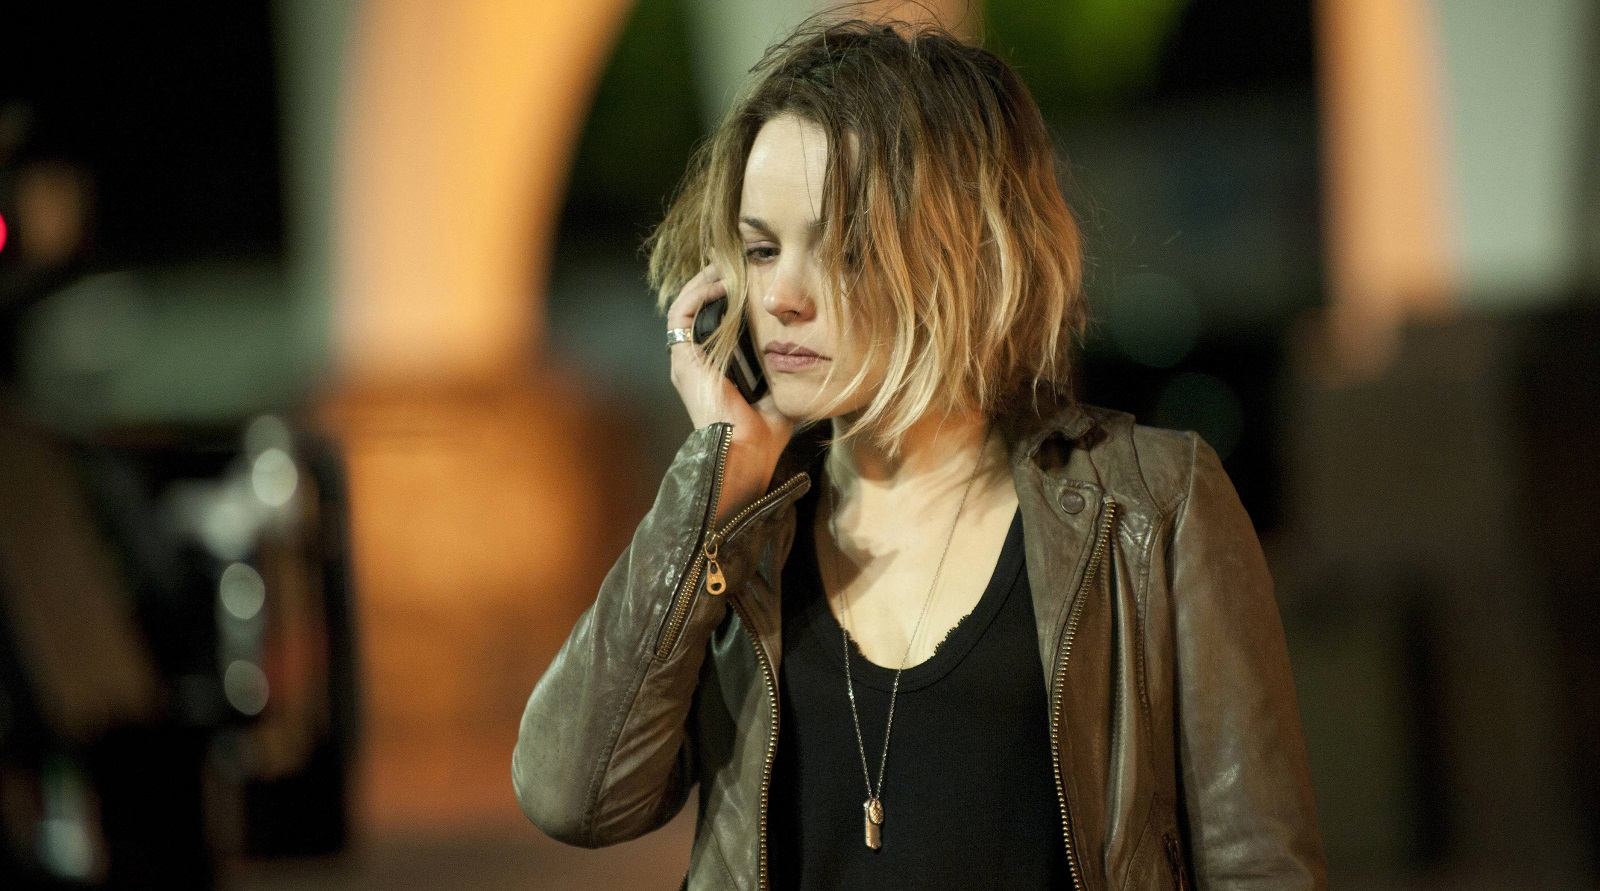 HBO's 'True Detective,' starring Rachel McAdams, pictured, is one of Jeff Simon's weekend suggestions. (Lacey Terrell)